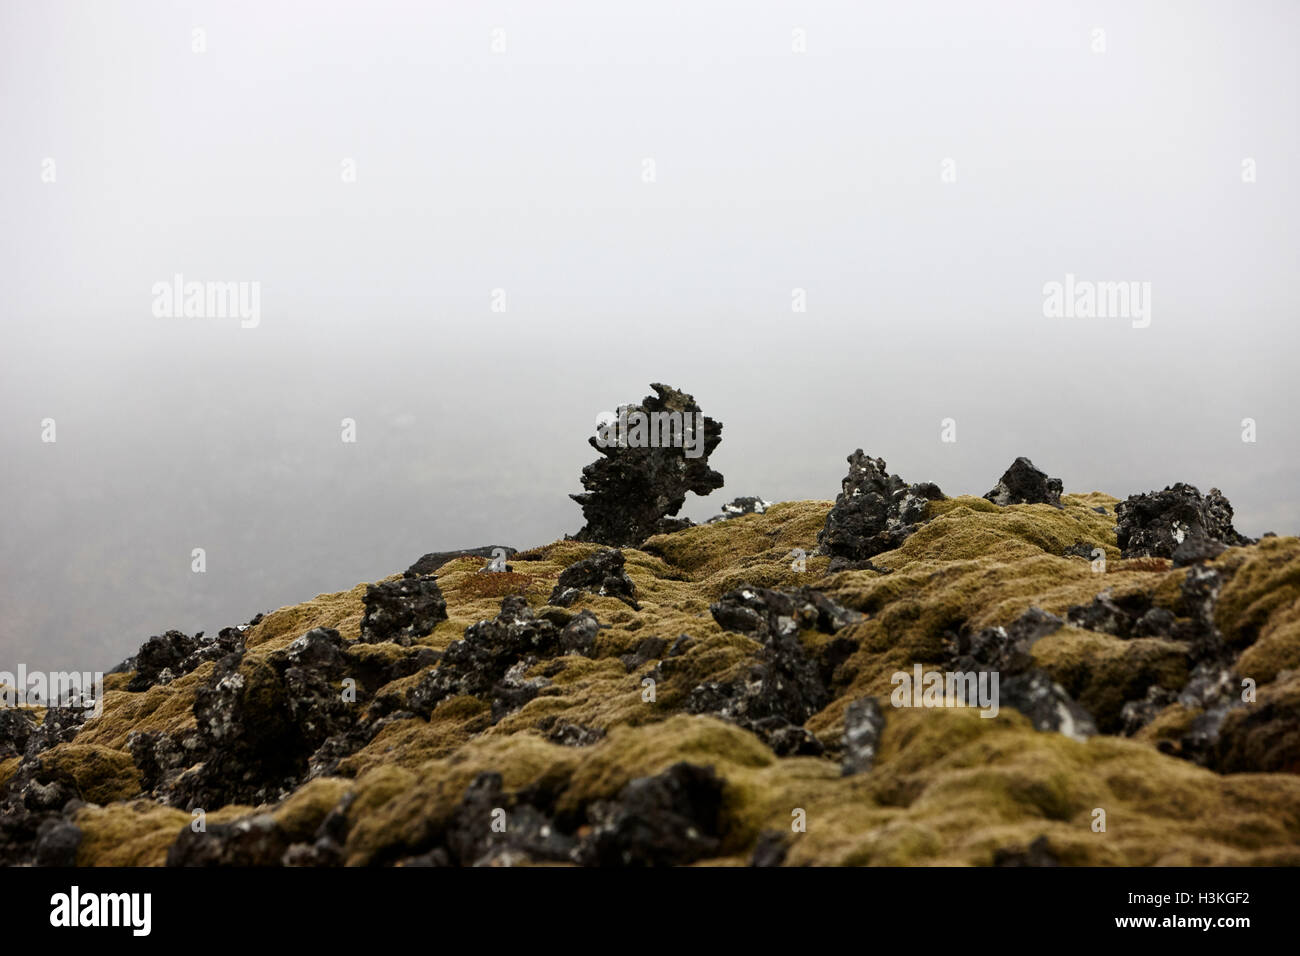 Trolls Iceland Stock Photos & Trolls Iceland Stock Images - Alamy